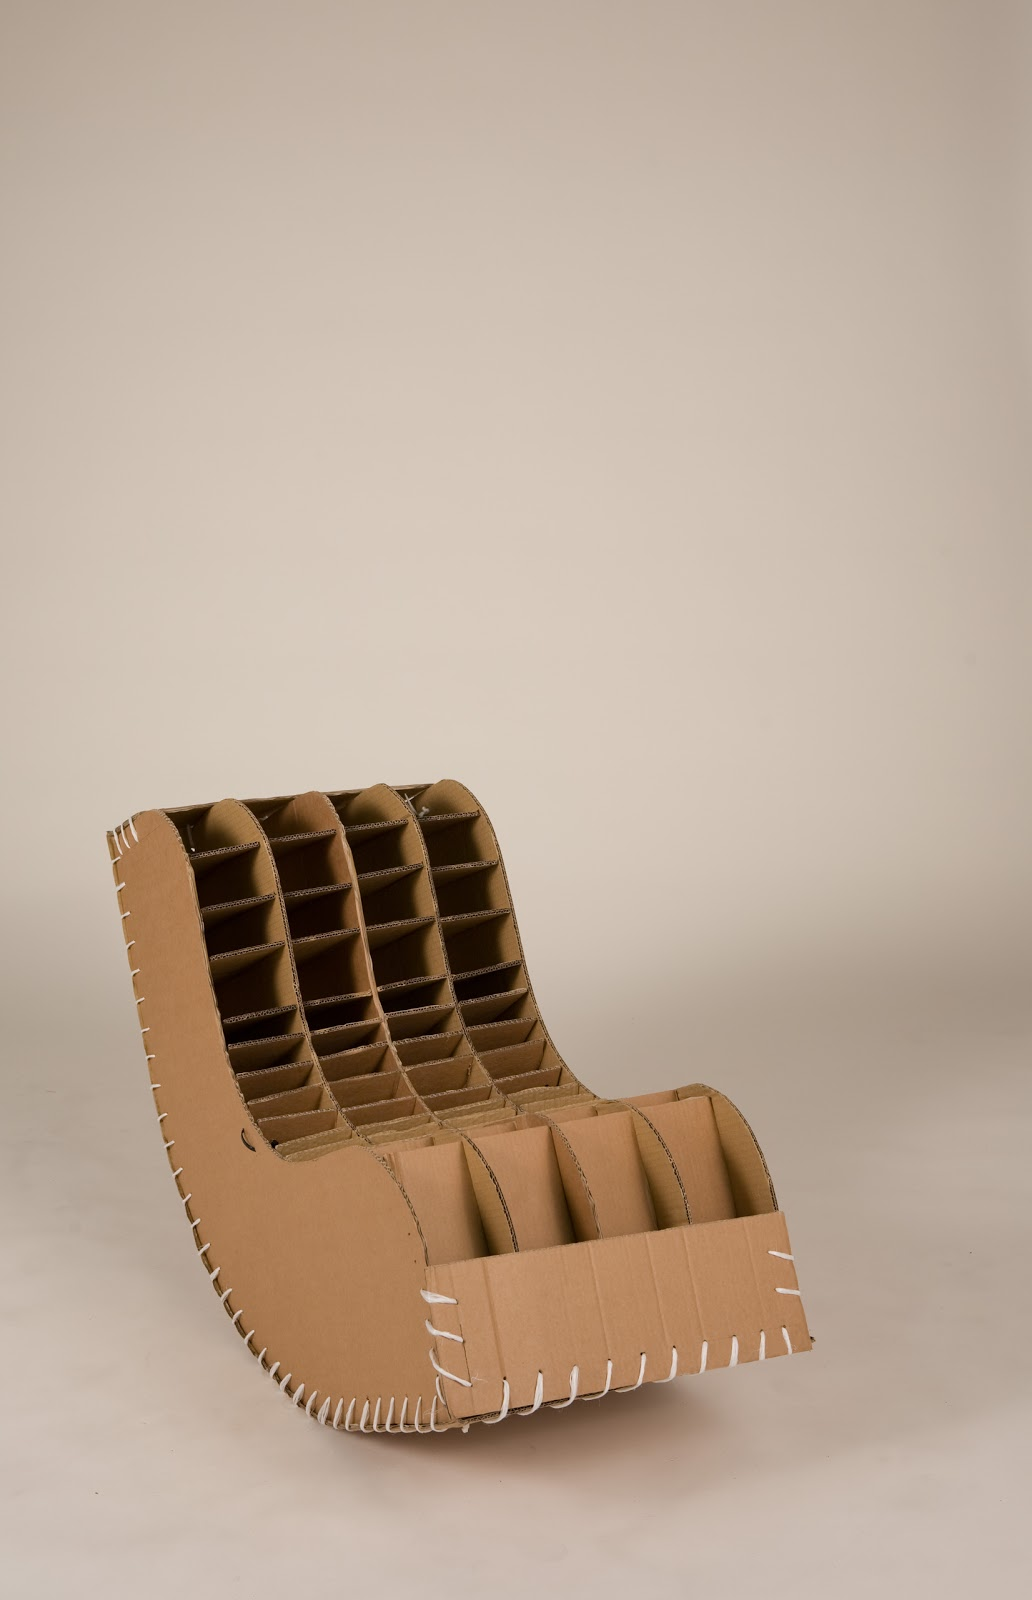 Cardboard rocking chair - Finished Product Cardboard Rocking Chair Sheet Seat Project This Product Does Work And Easily Copes With One Persons Weight Whilst Rocking